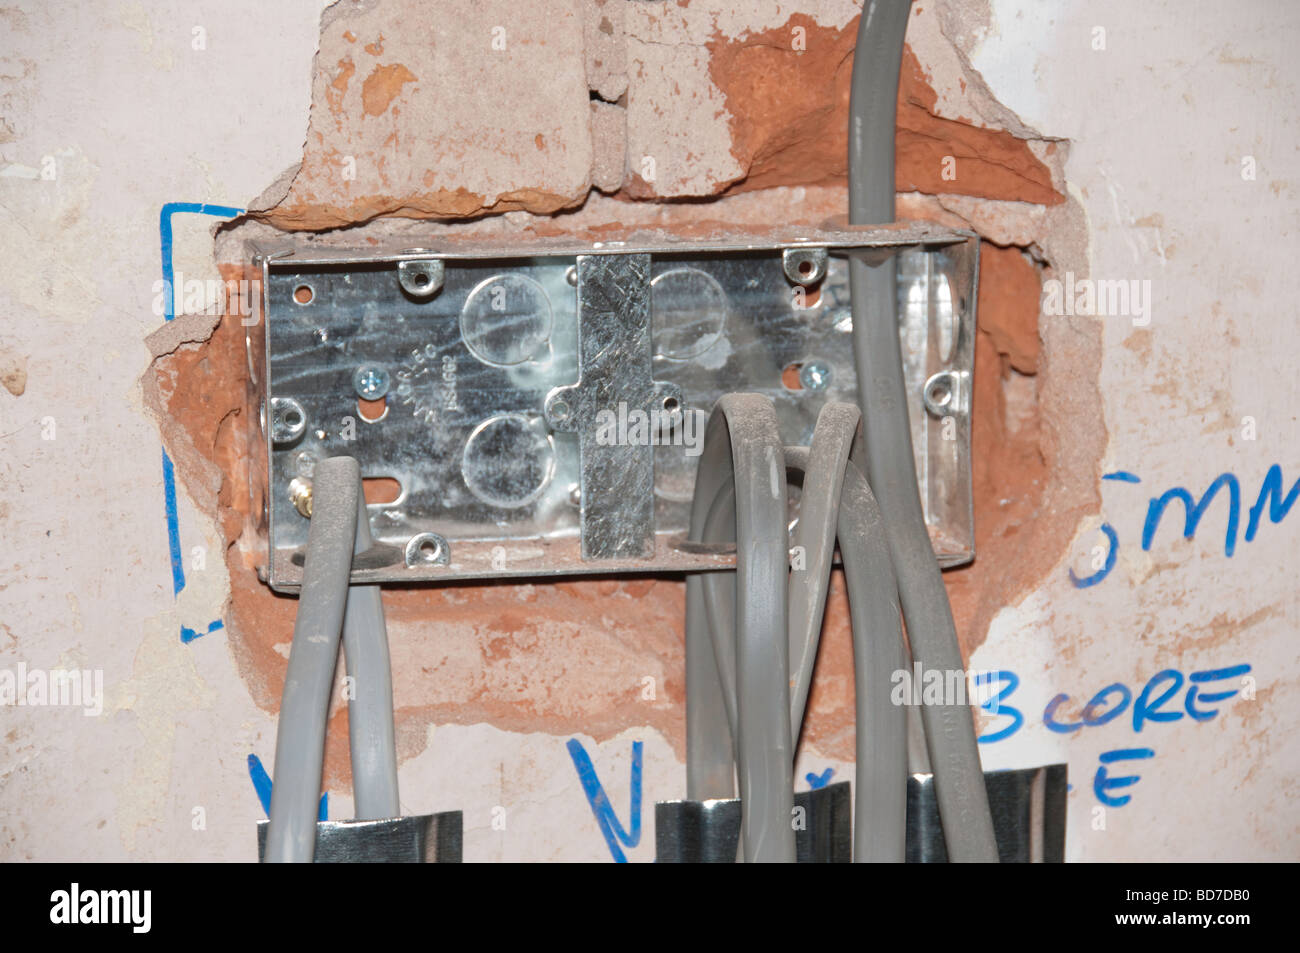 New Electrical Wiring In A House Renovation